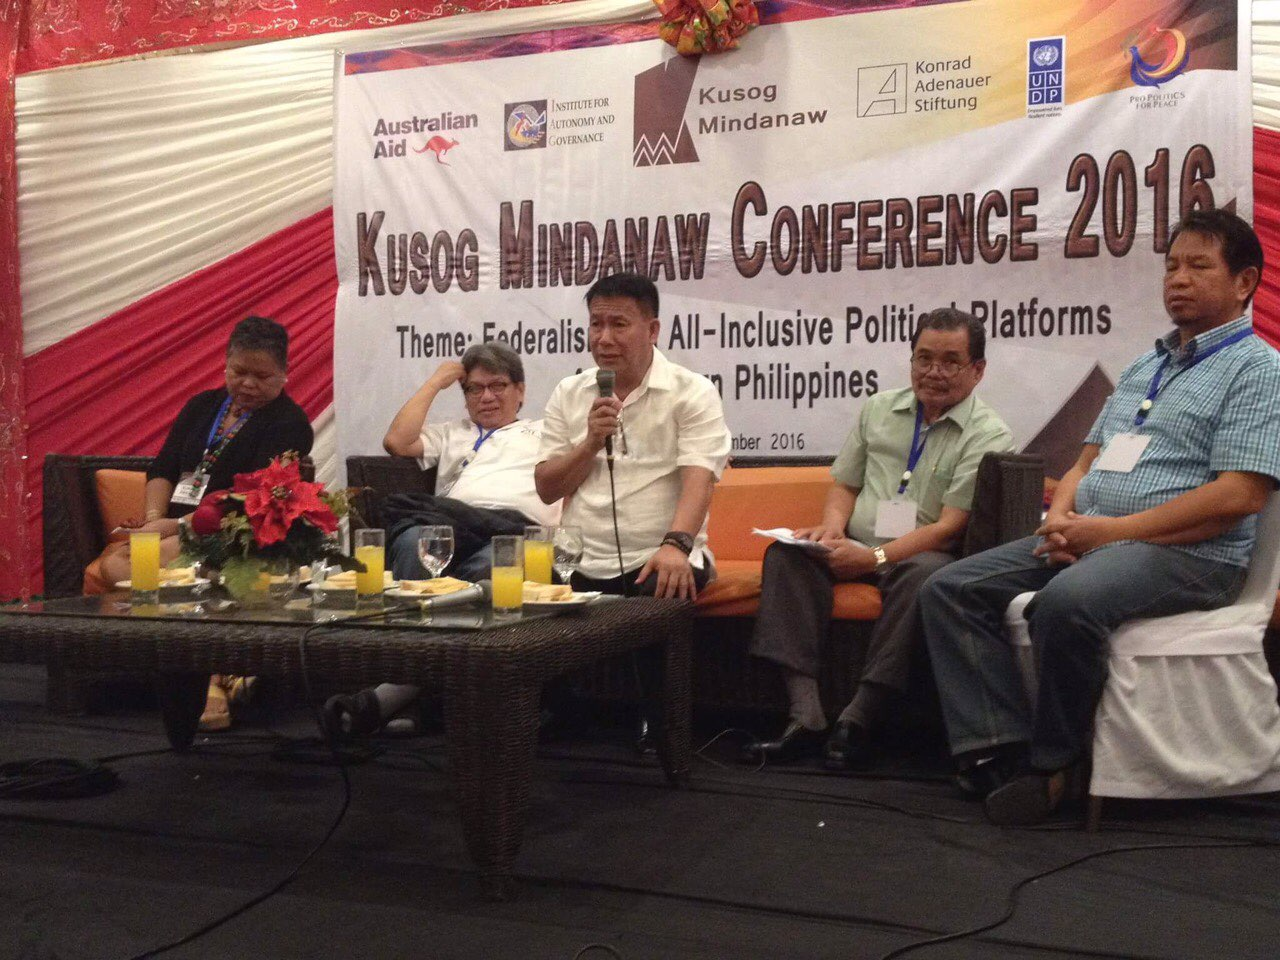 OPAPP Assistant Secretary Dickson Hermoso (center) during the culmination of the Kusog Mindanaw Conference 2016 yesterday, November 30, in Davao City.